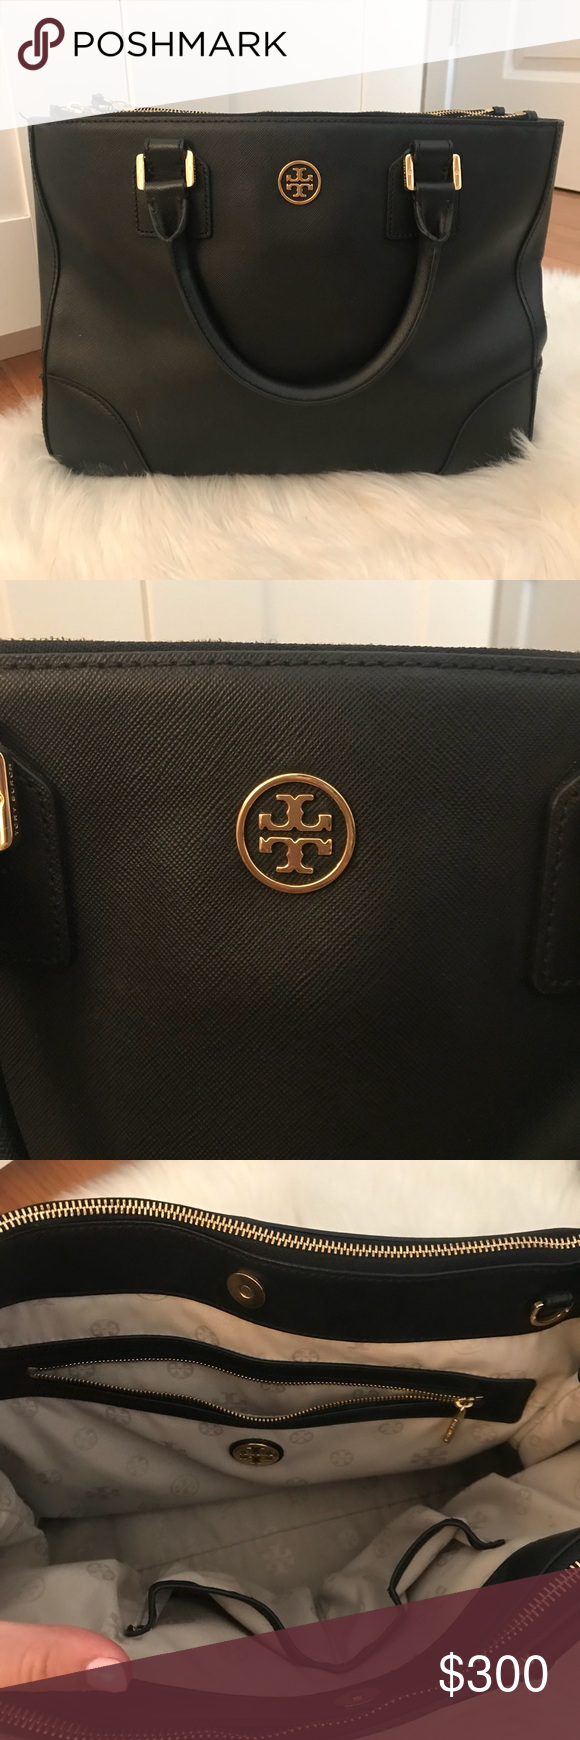 Tory Burch Robinson Tote!! 💗 Tory Burch Robinson tote in great condition! Only used for a couple months. No scratches on hardware. Minor scratch on front of the bag, bottom left. Can easily be removed. Comes with strap and dust bag! Original tag included. This bag has lots of compartments for organization. Love this tote but time for a new one!!! 💗💗 perfect gift for the holidays!! 🎄🎁 Tory Burch Bags Totes